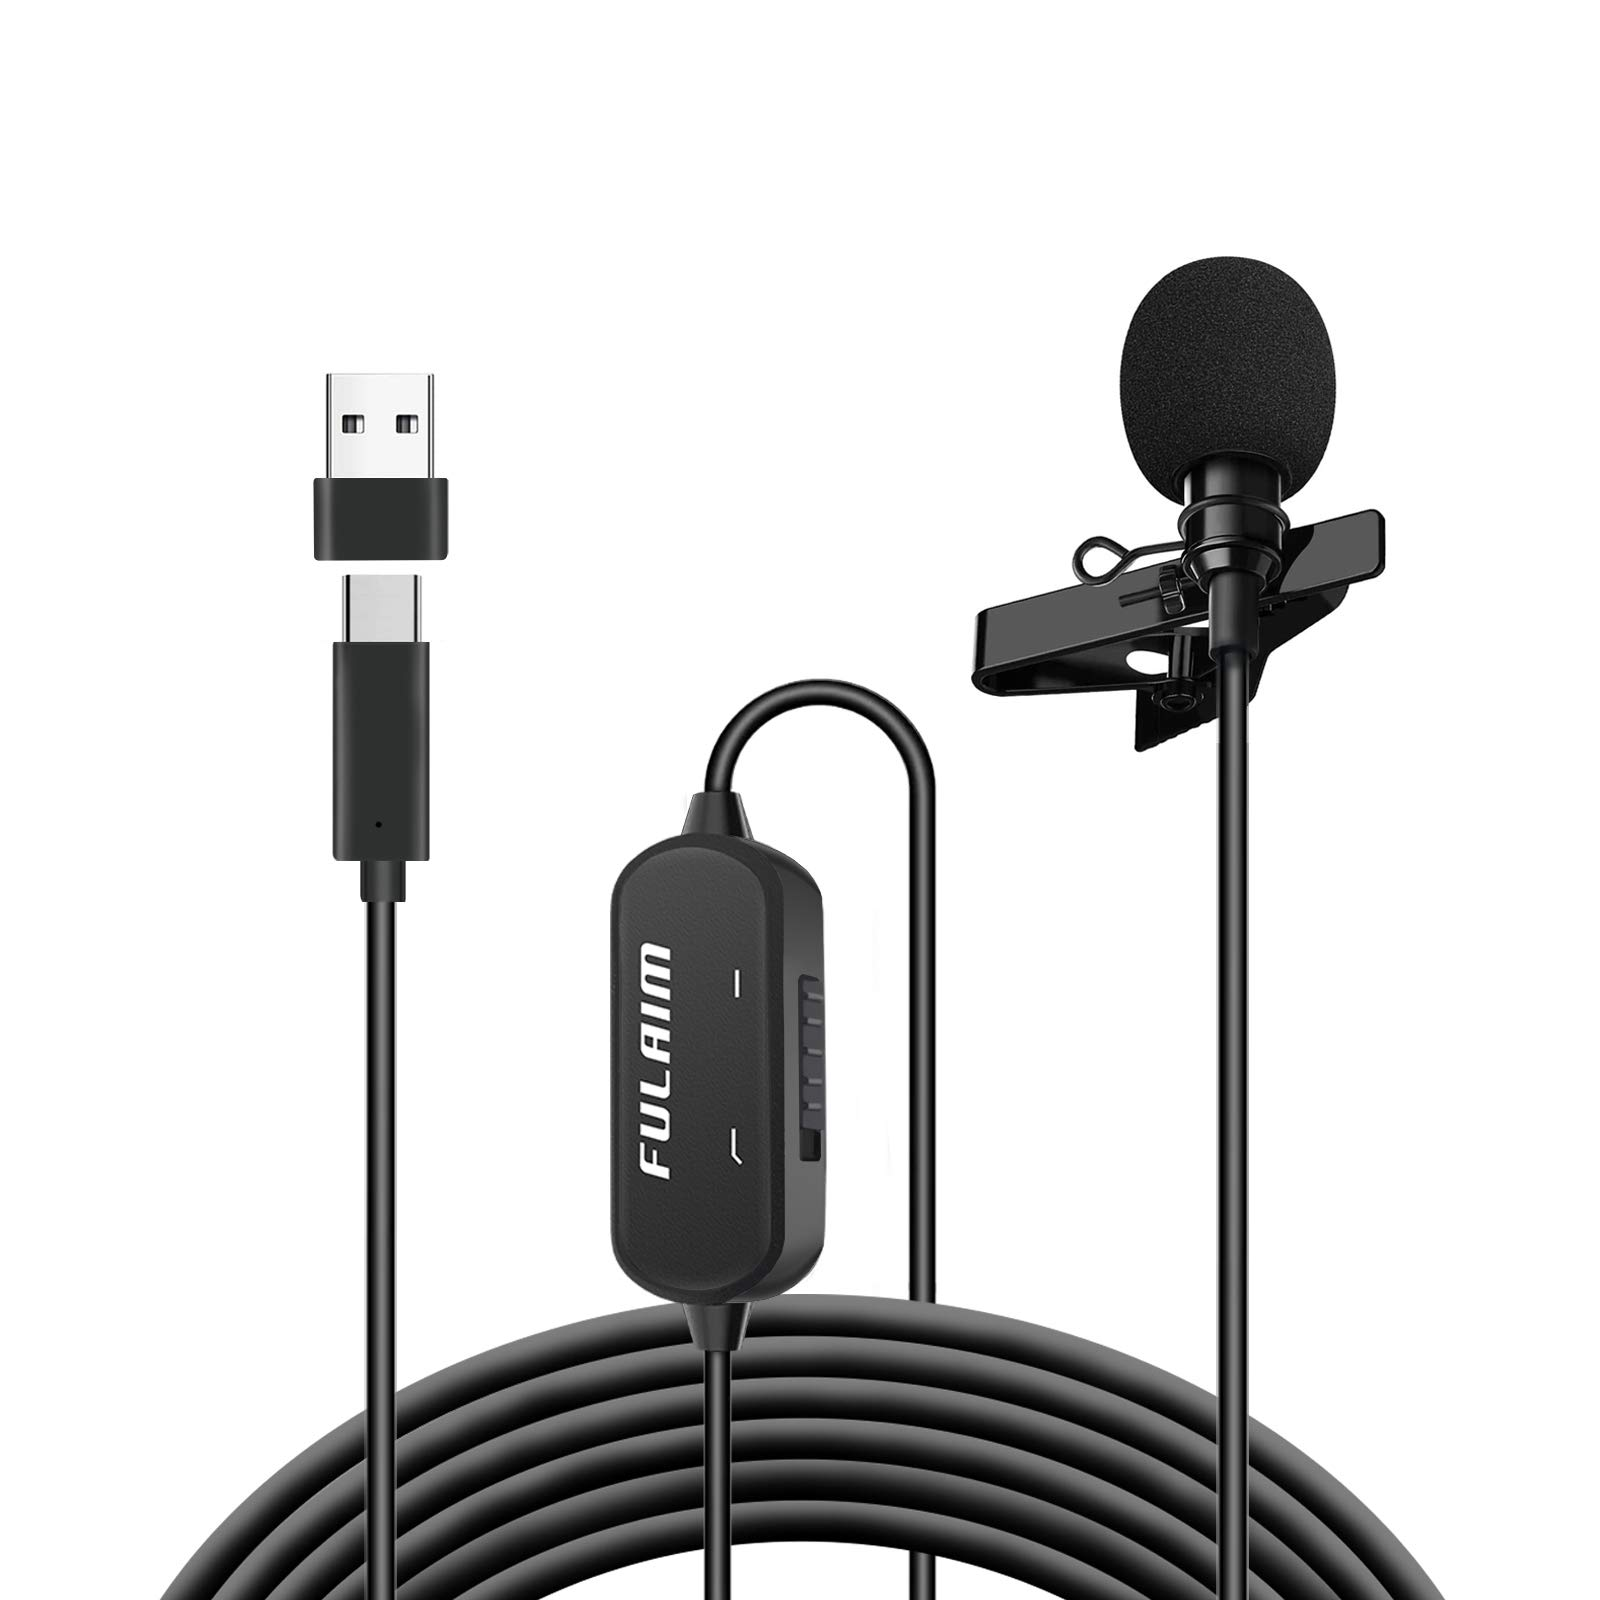 FULAIM USB Type C Lavalier Lapel Microphone with Noise Reduction for Smartphone, 19.7Ft USB C Professional Omnidirectional Clip Mic for YouTube/Interview/Recording Come with USB Adapter for PC, Laptop